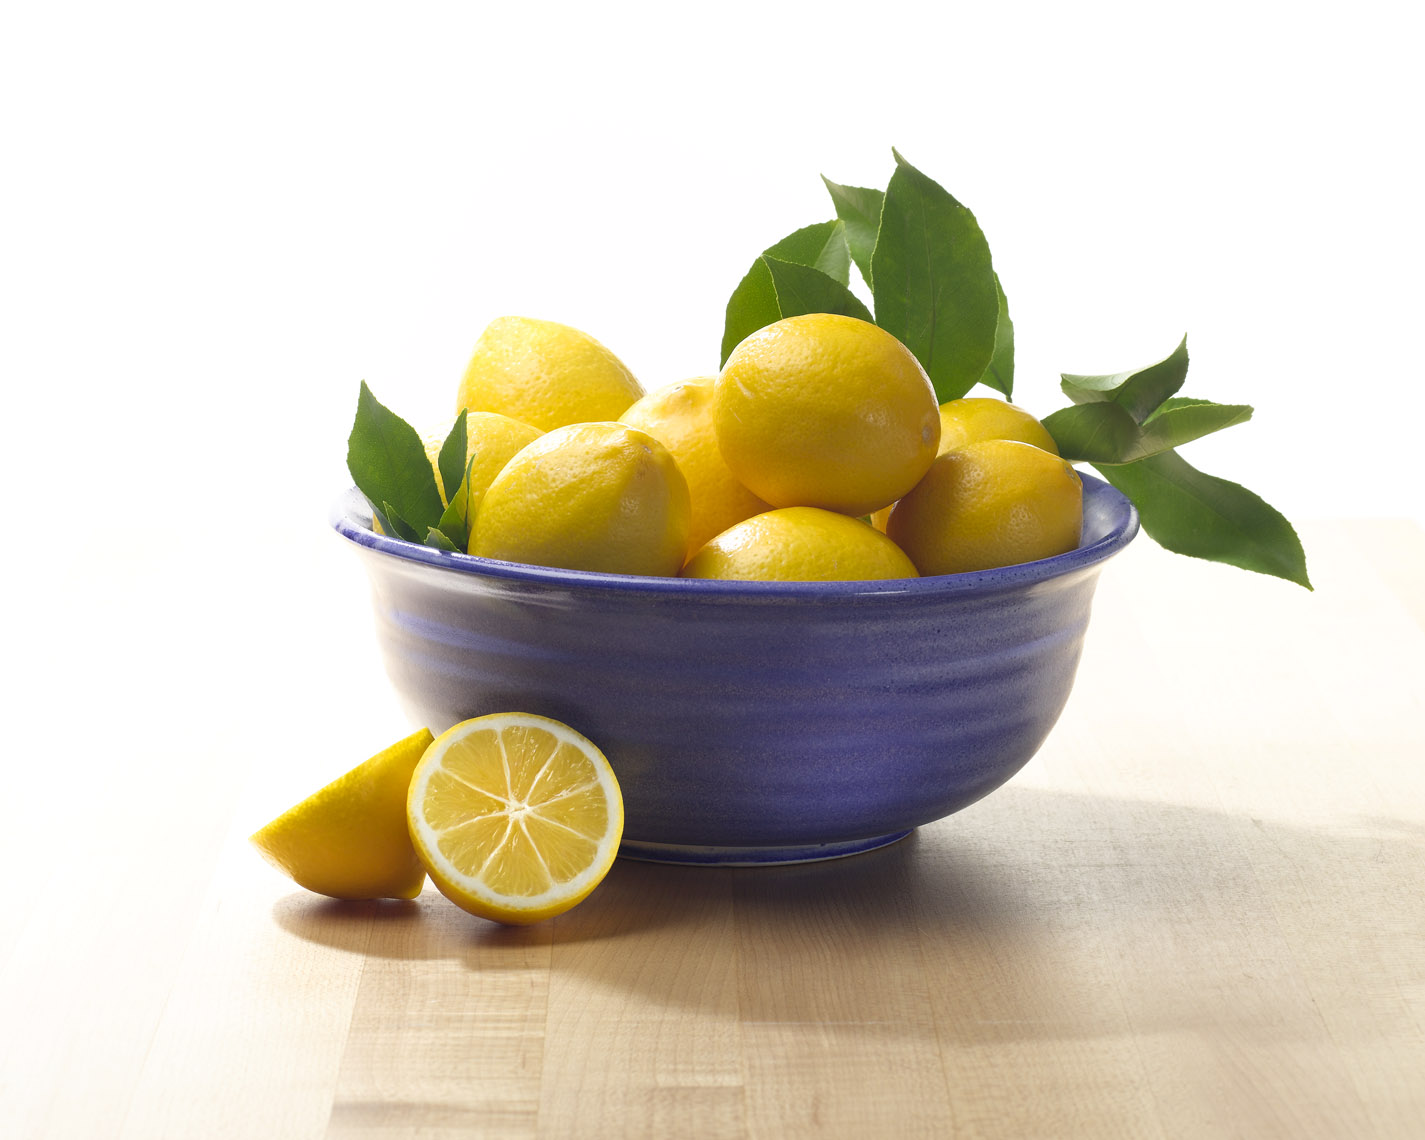 Food Still Life, Fresh Lemons in Blue Bowl